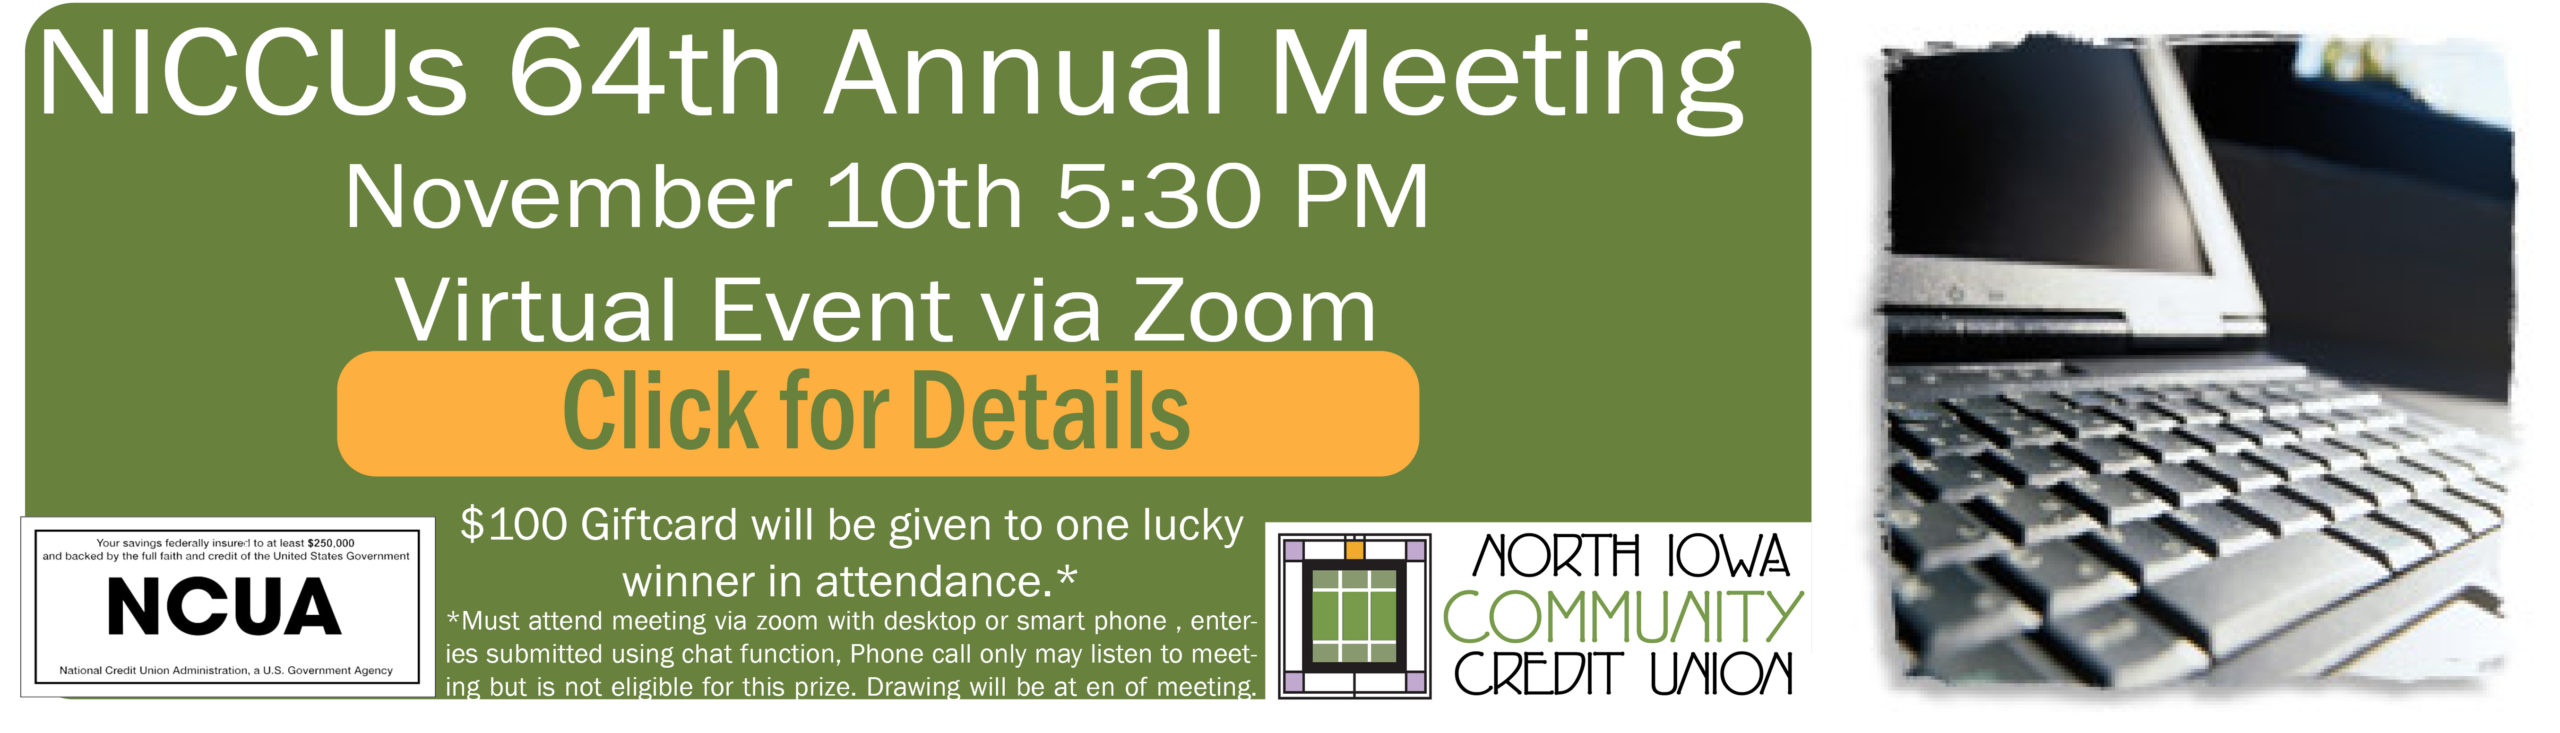 Annual Meeting Notice on November 10th at 5:30 PM, Free virtual Event Via Zoom